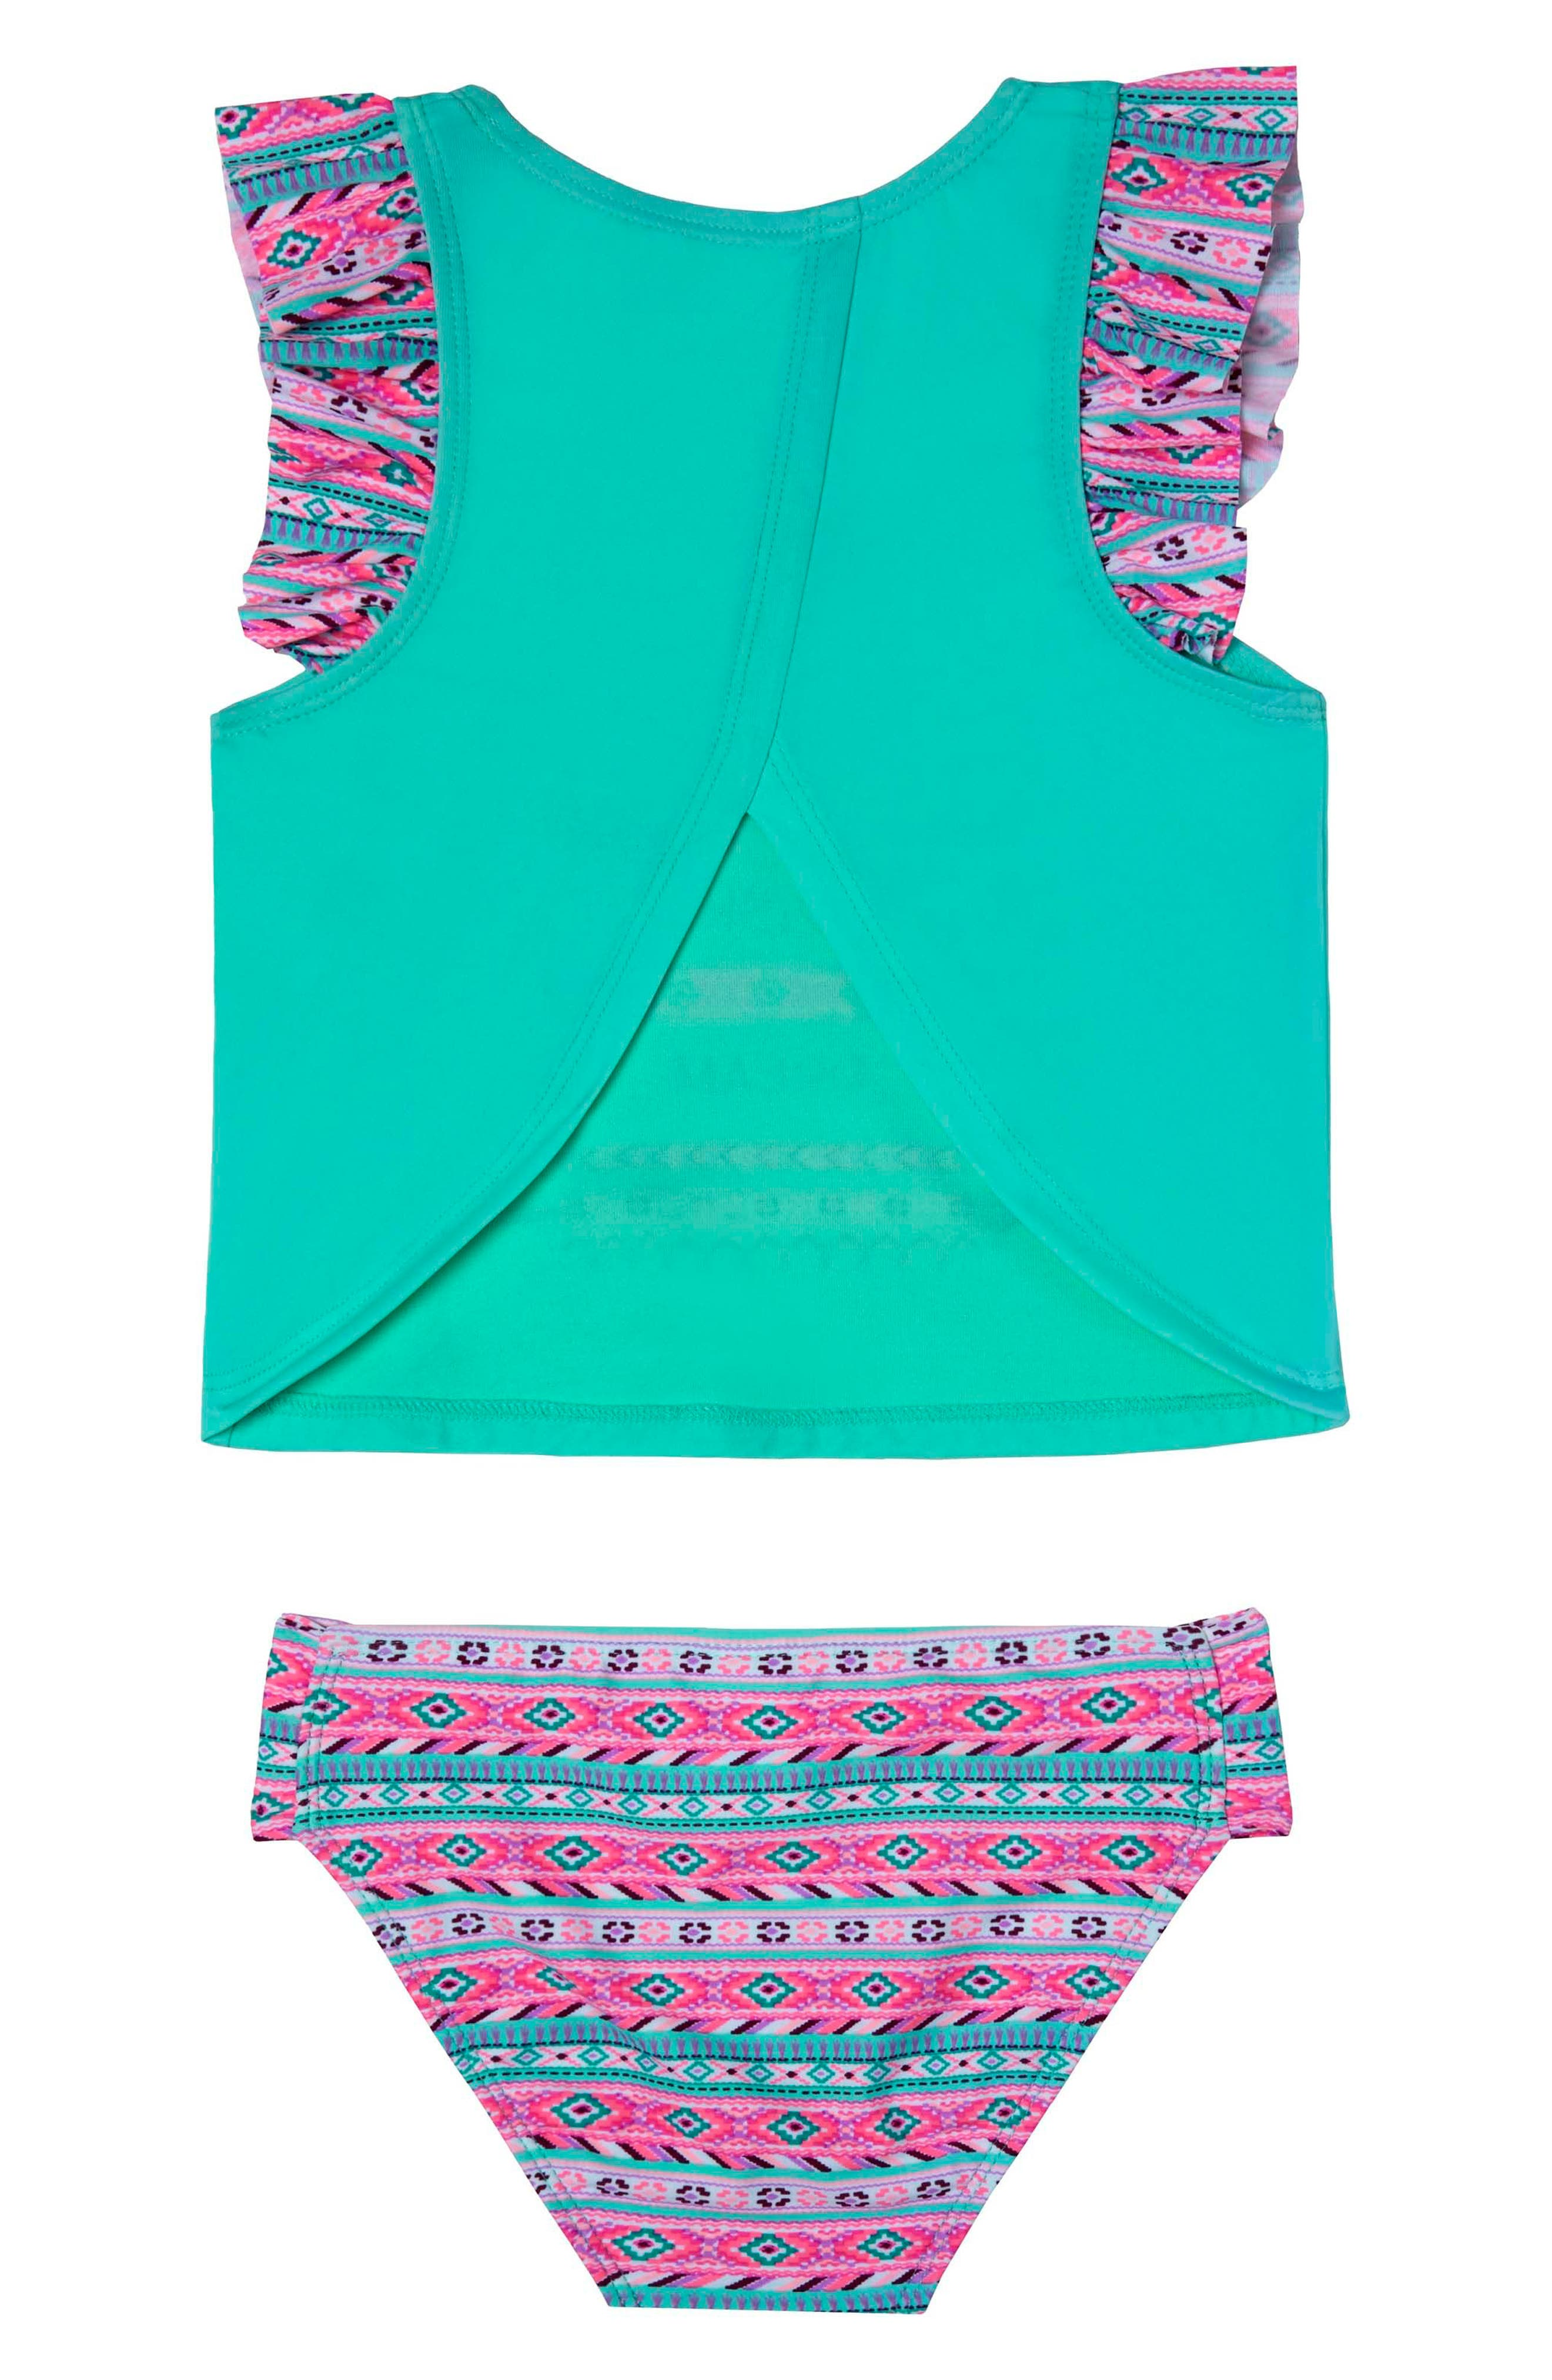 BFF - Hope, Wish & Dream Two-Piece Tankini Swimsuit,                             Main thumbnail 1, color,                             304